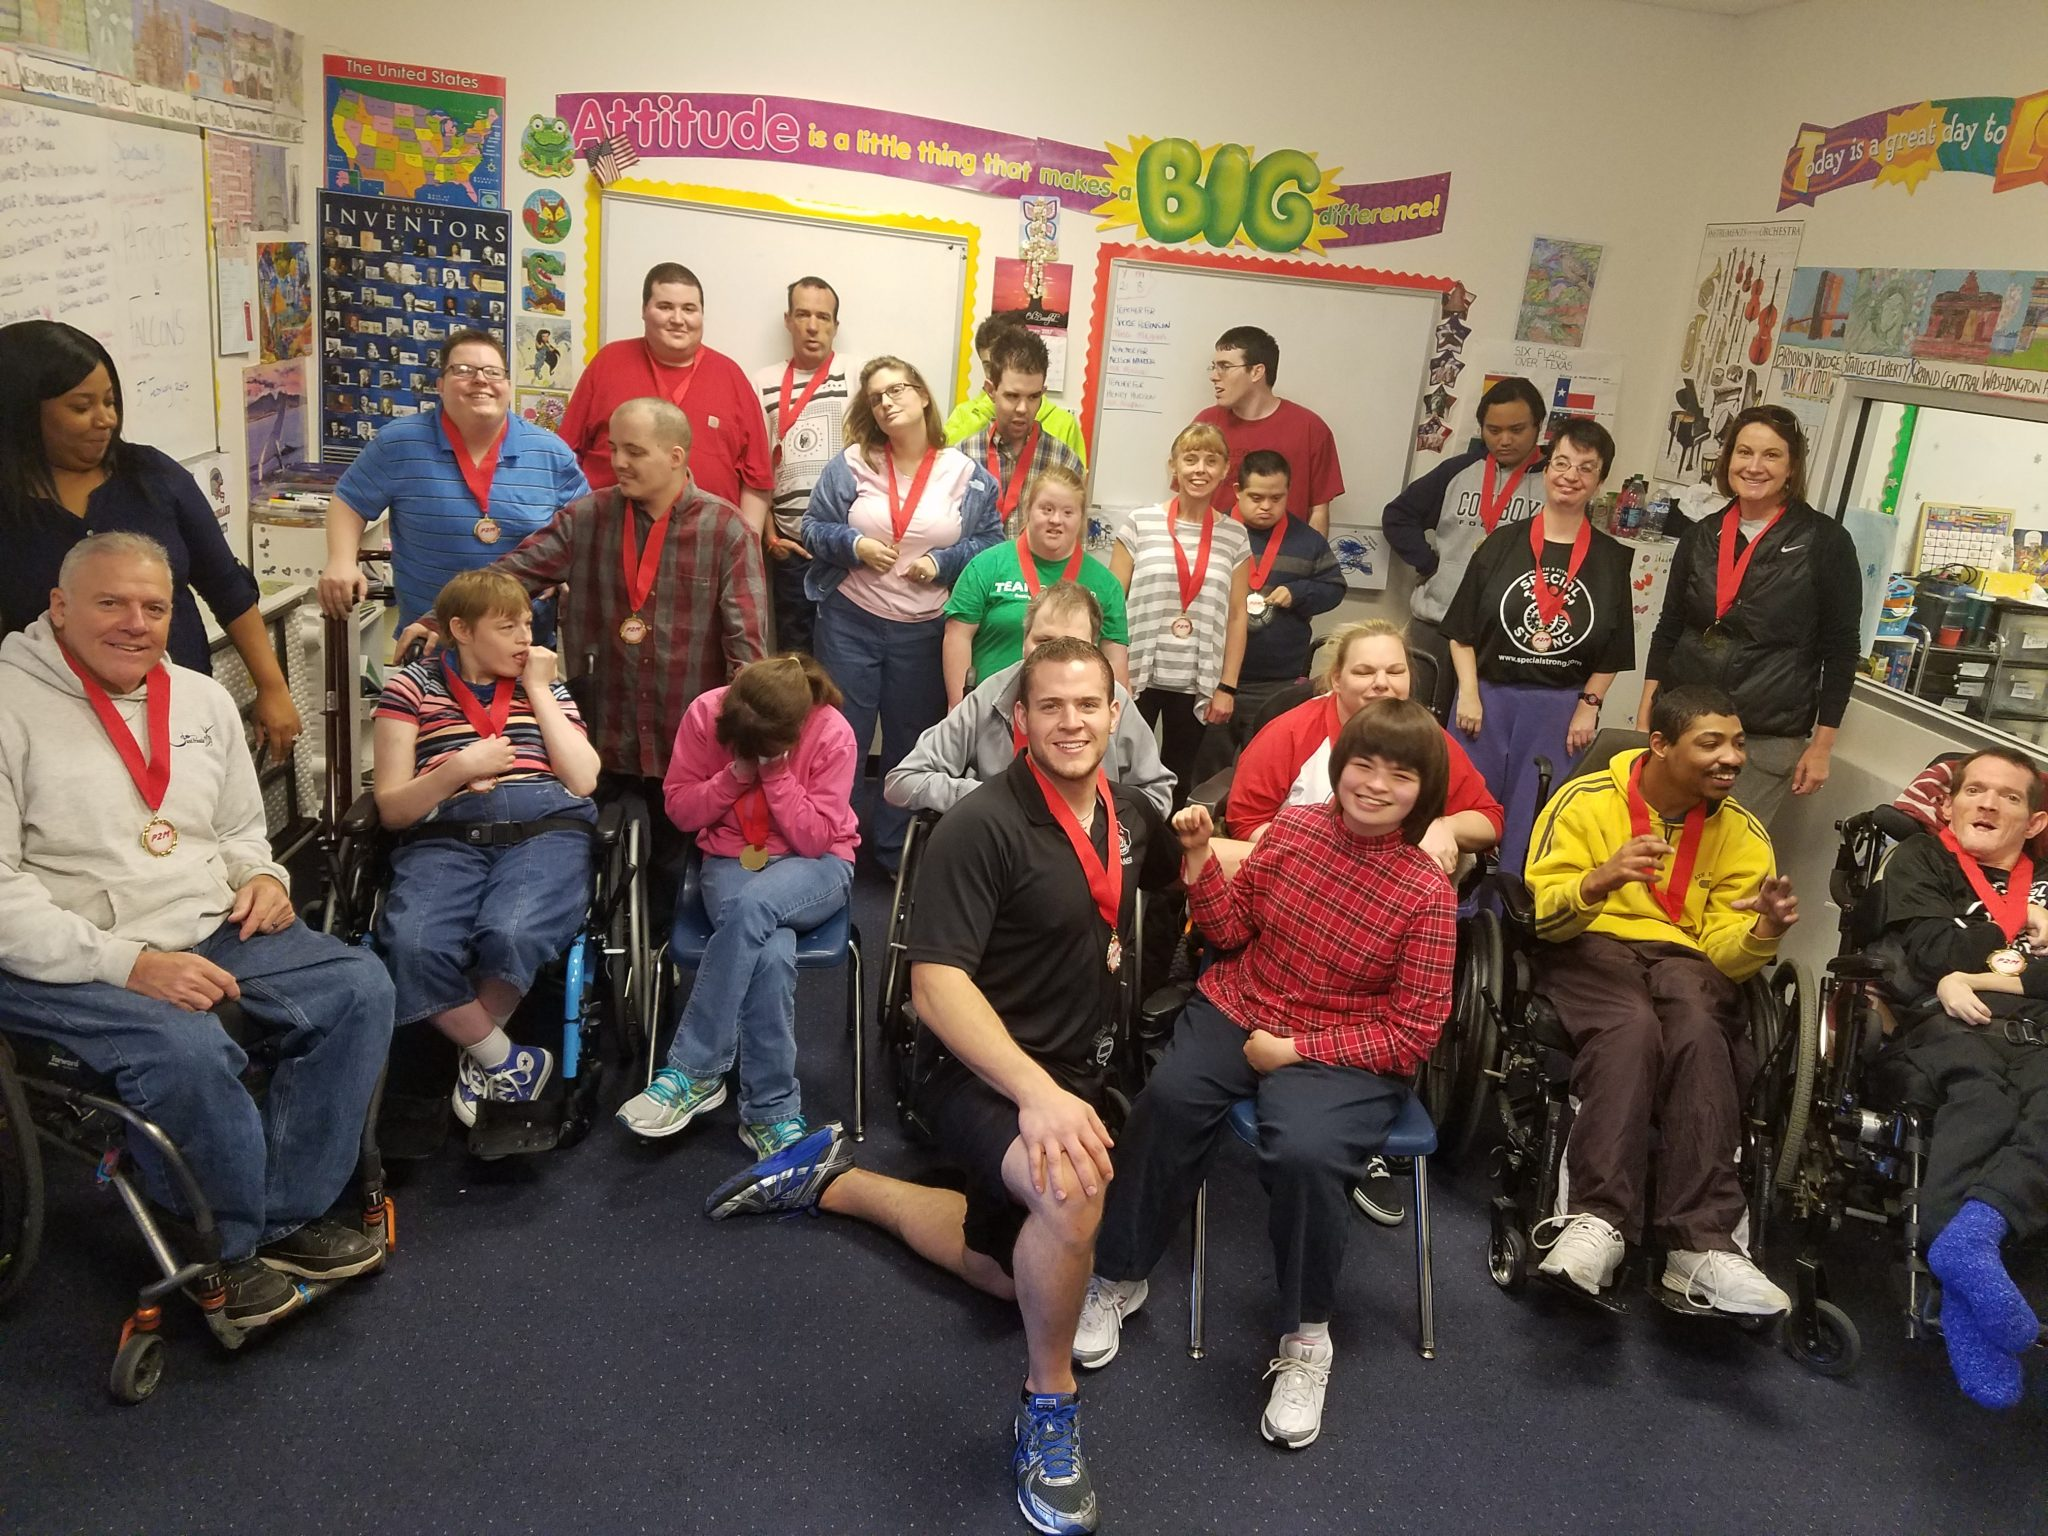 edh-group-picture-special-needs-down-syndrome-autism-exercise